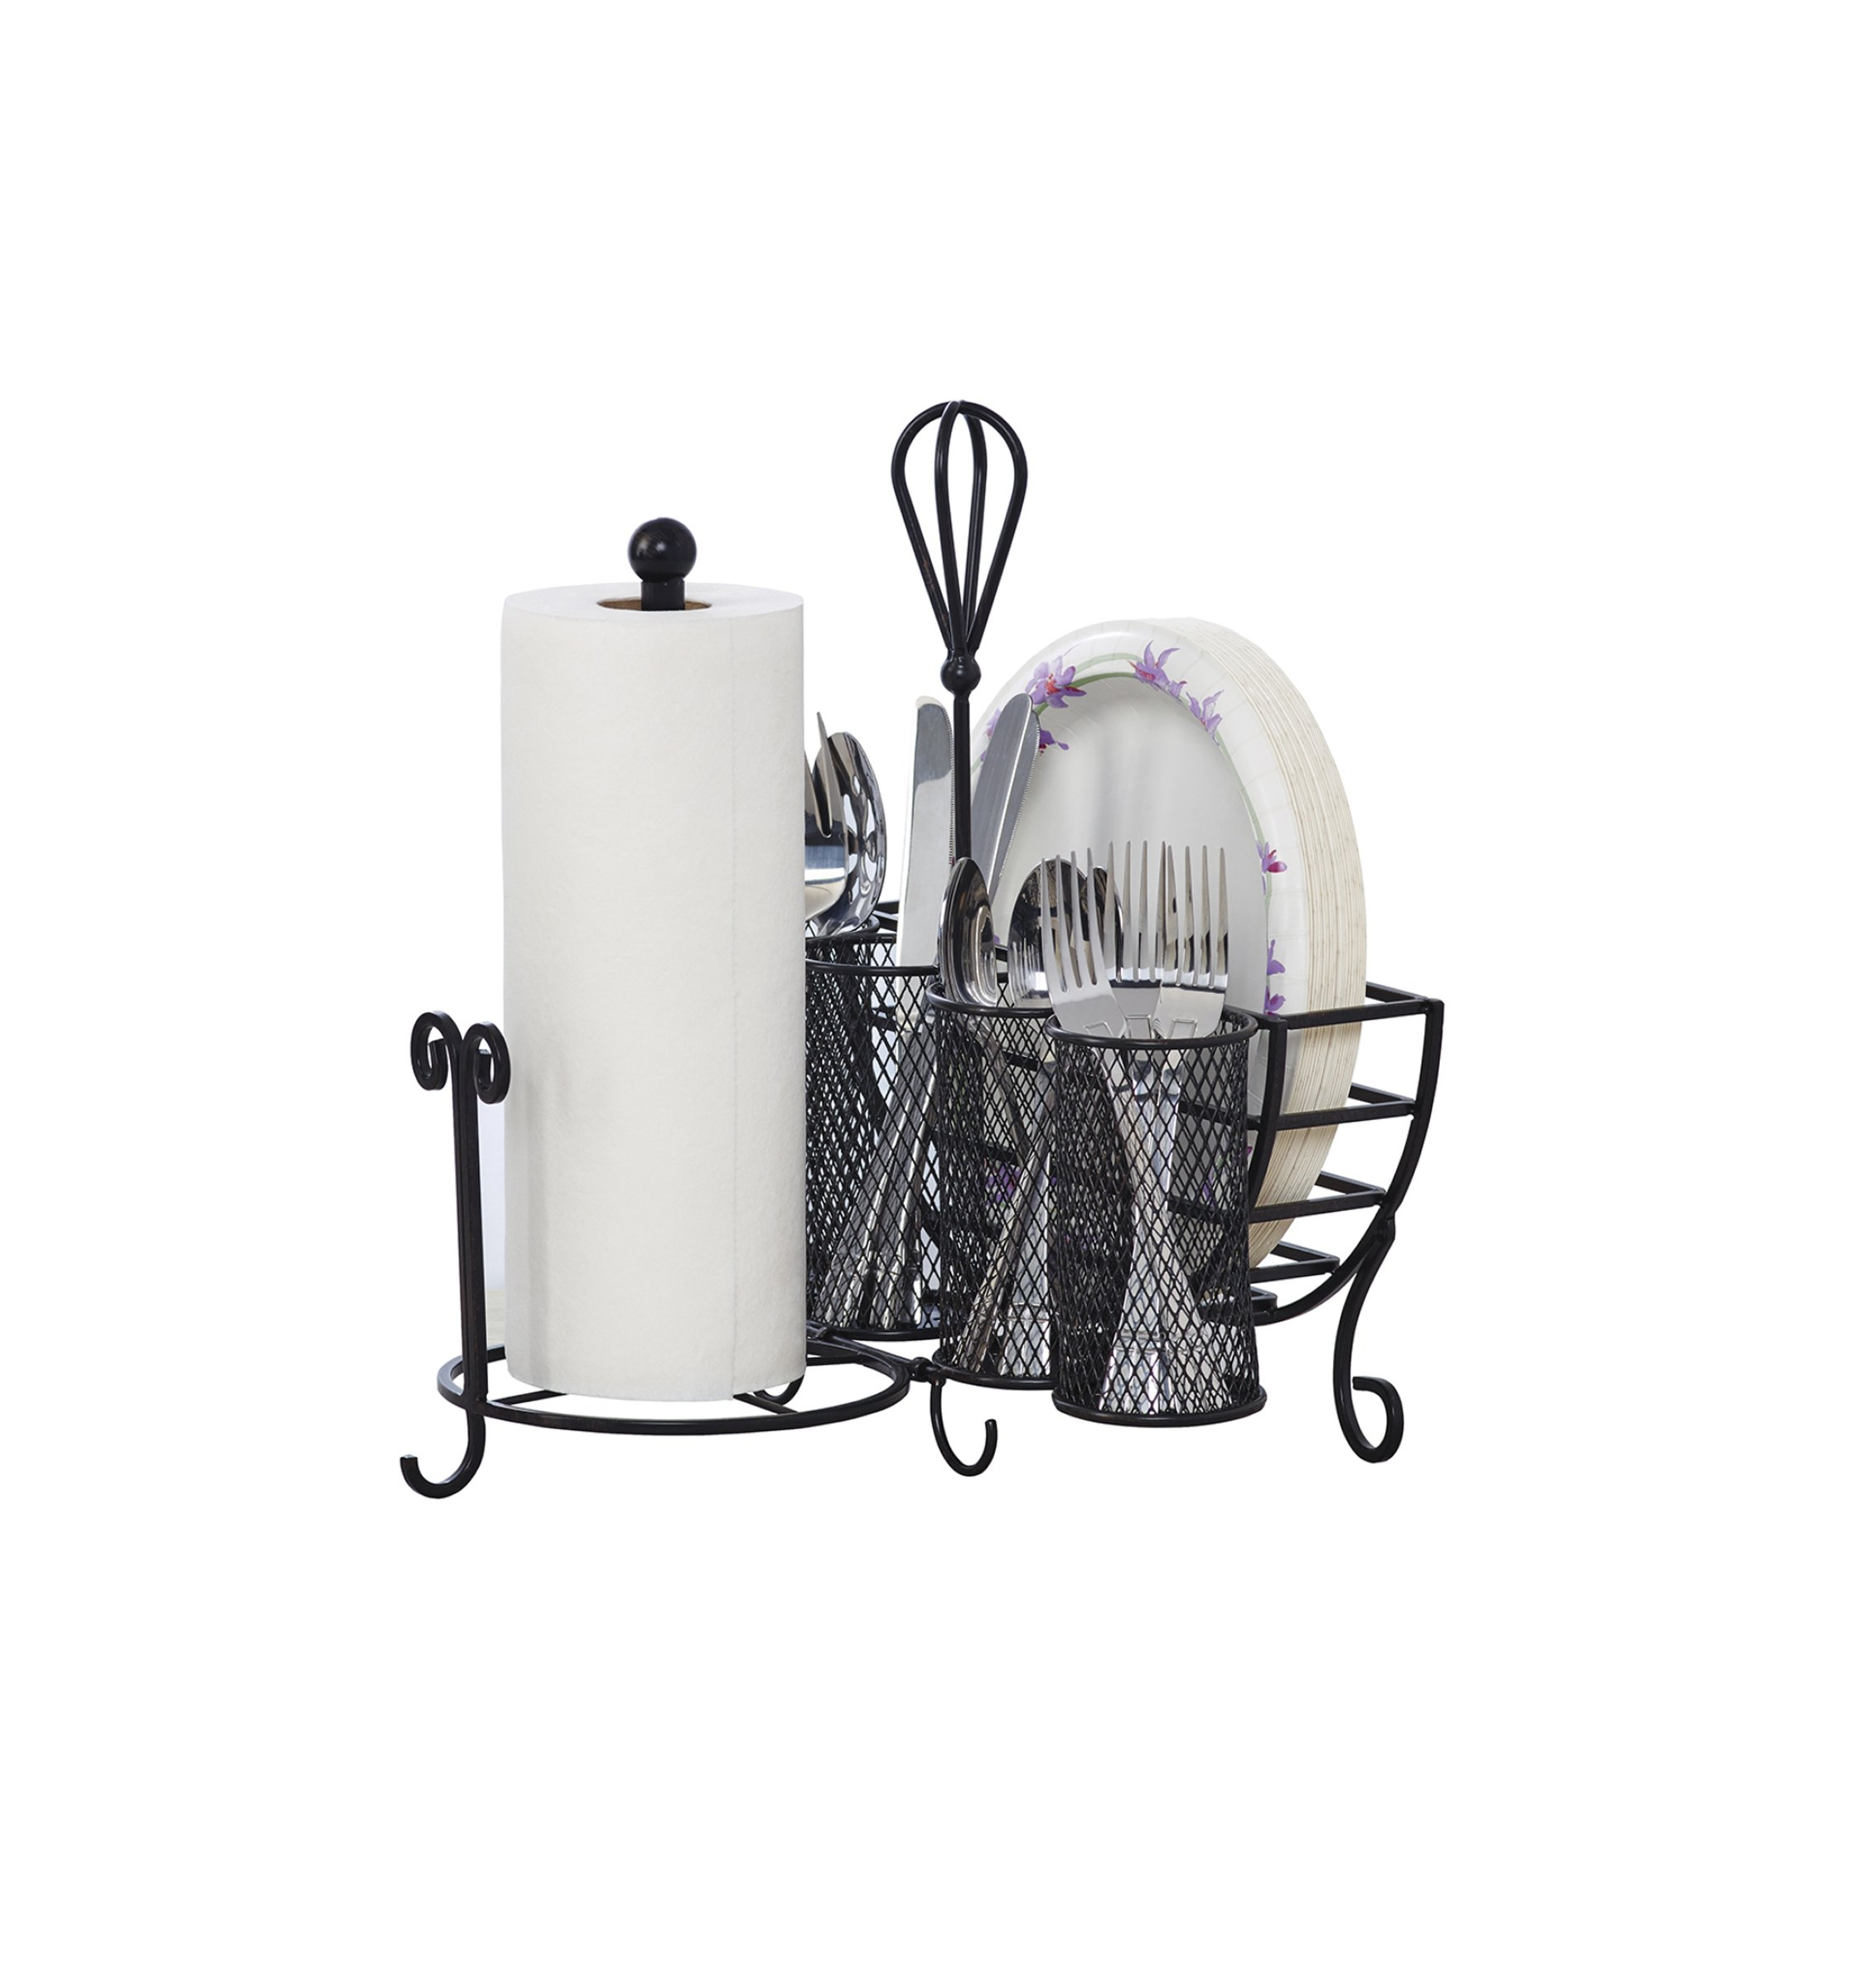 Gourmet Basics by Mikasa 5176813 Avilla Picnic Plate Napkin and Flatware Storage Caddy with Paper Towel Holder, Antique Black